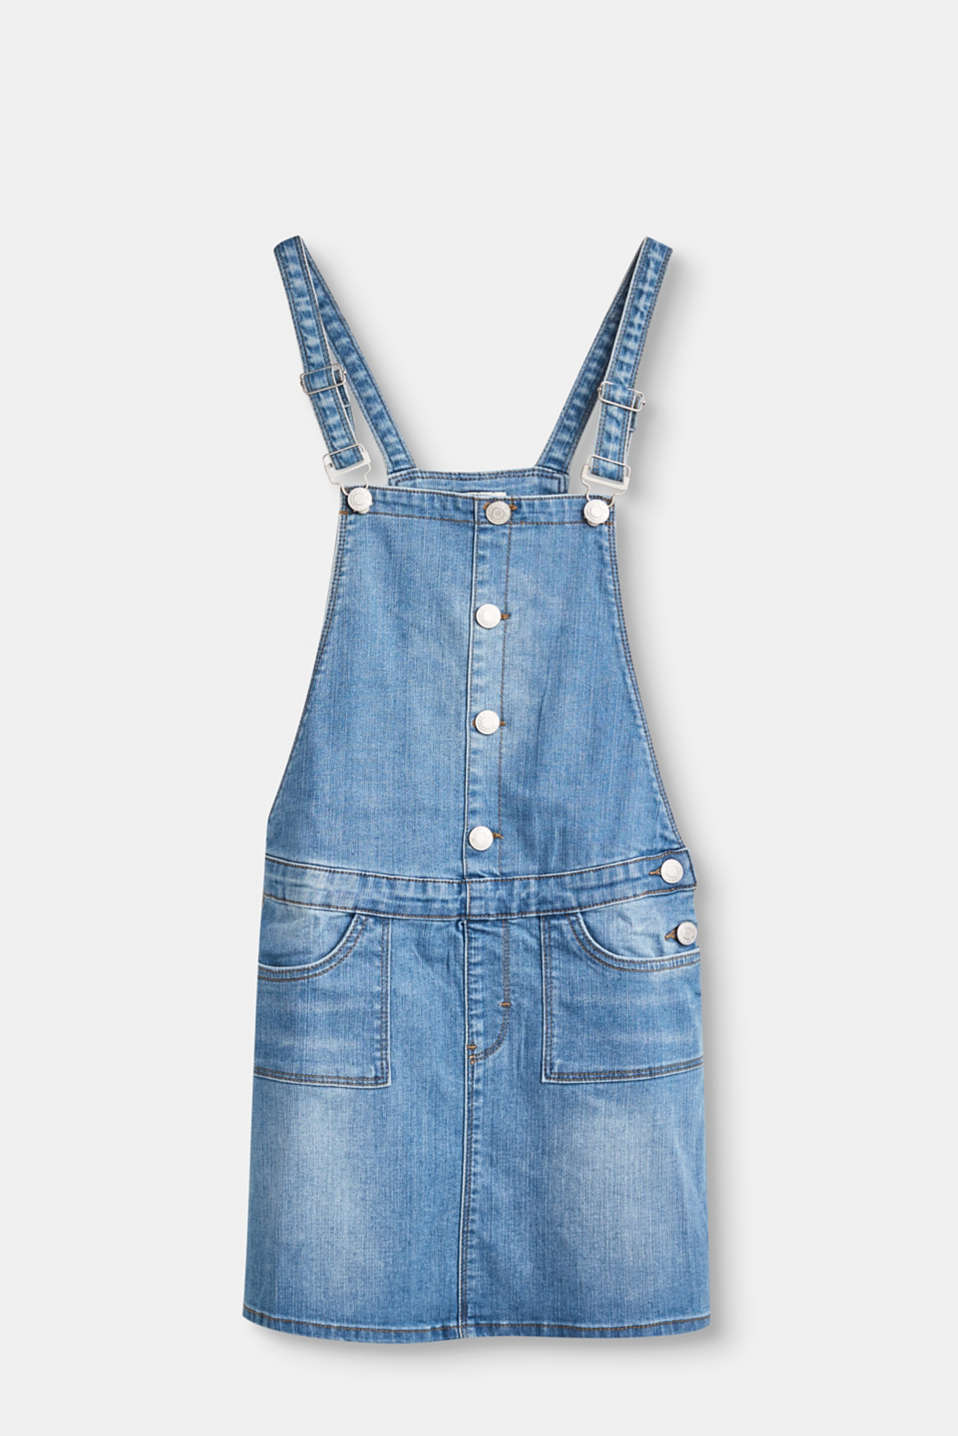 Esprit - Denim pinafore, adjustable waist